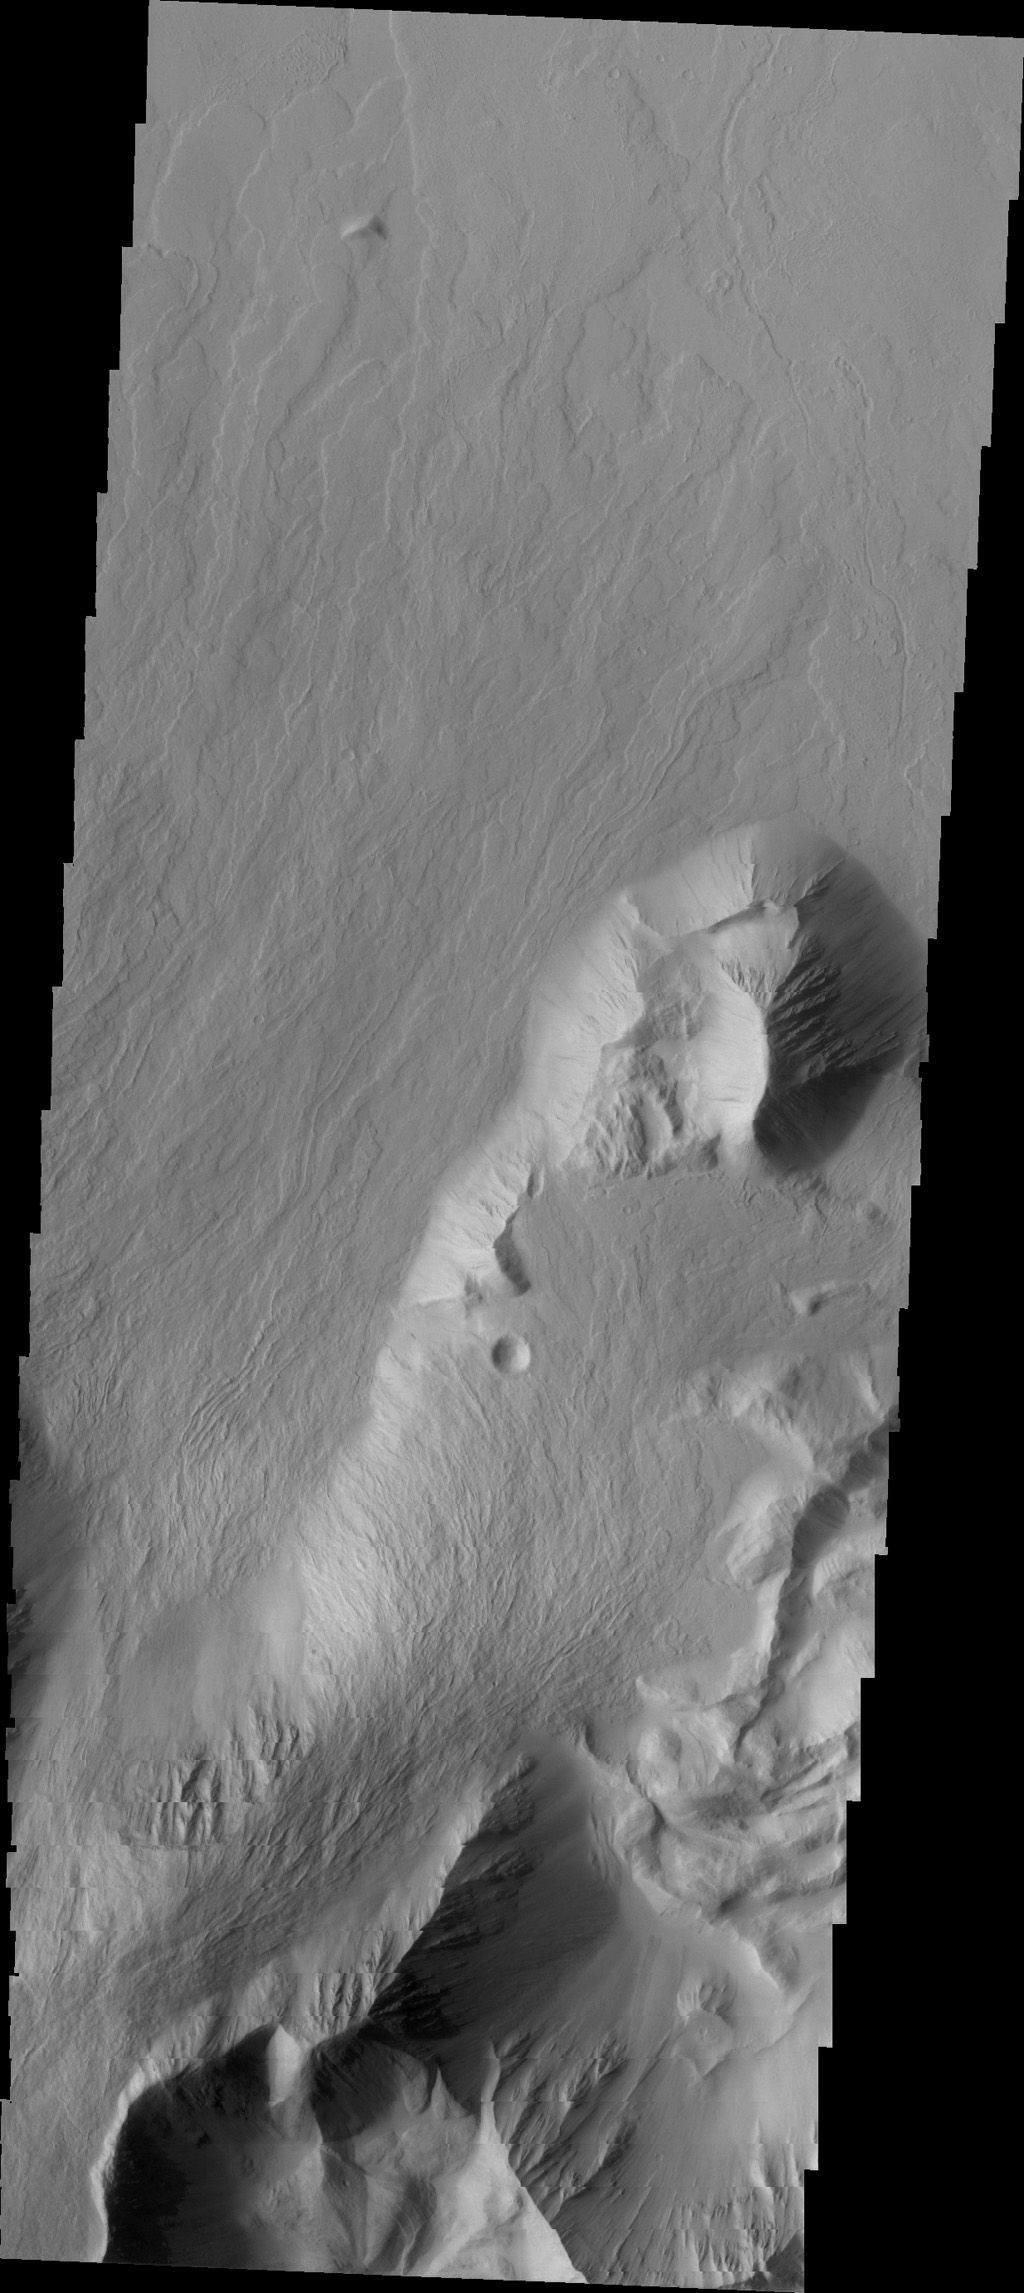 This image captured by NASA's 2001 Mars Odyssey spacecraft shows Olympus Mons is surrounded by an escarpment, called Olympus Rupes, a steep cliff-face between the volcano and the surrounding lava flows on the northeastern side of Olympus Mons.